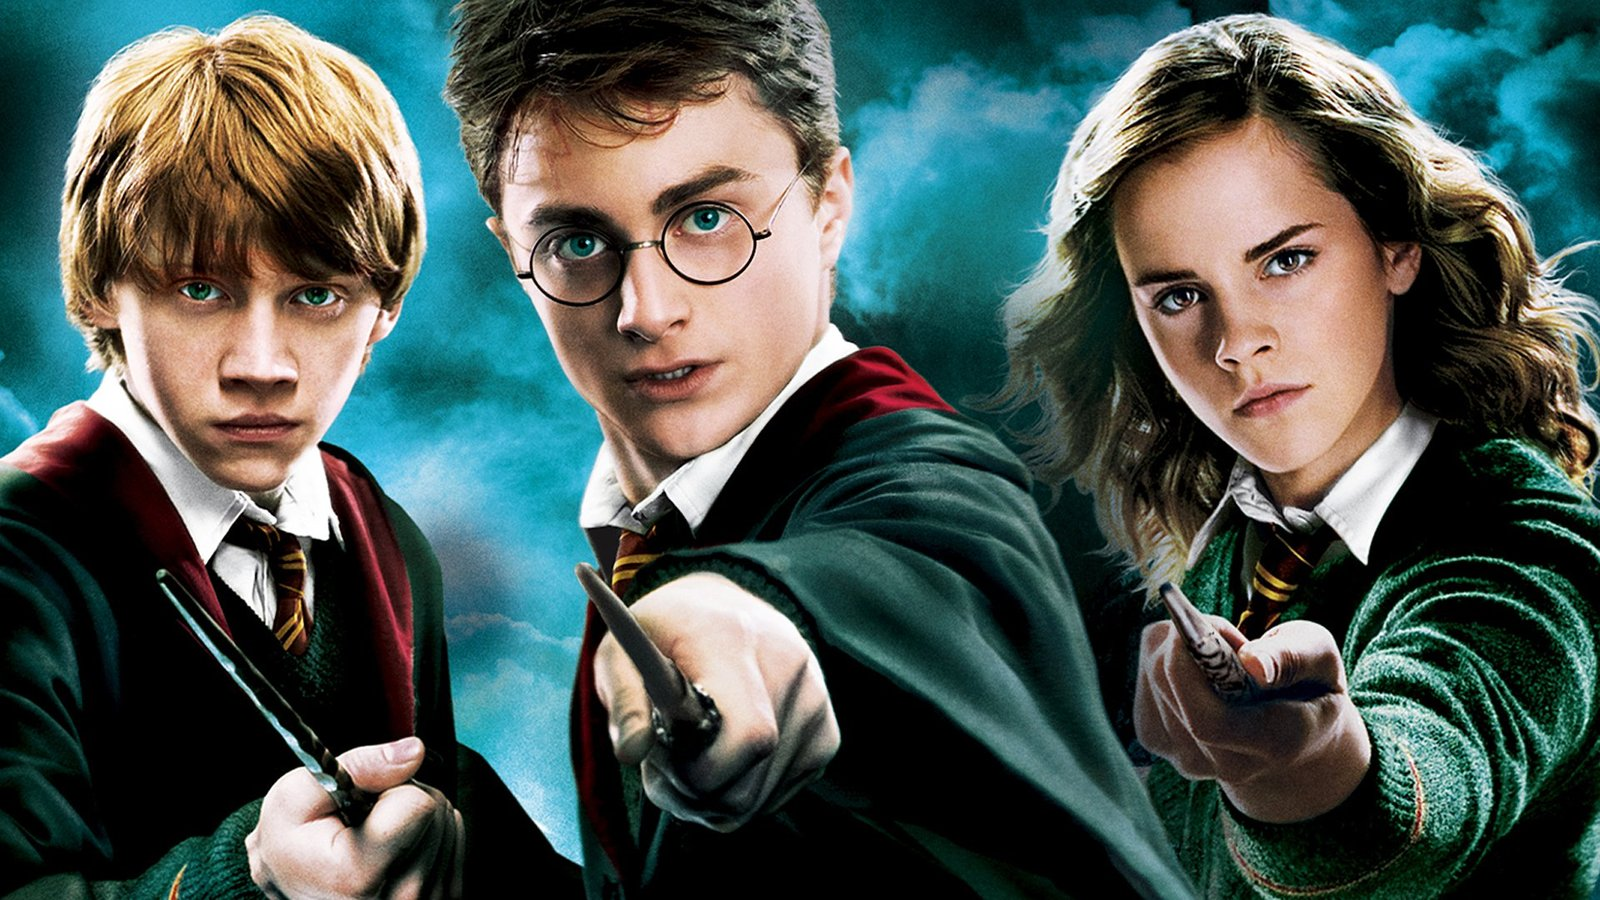 / Harry Potter and the Order of the Phoenix